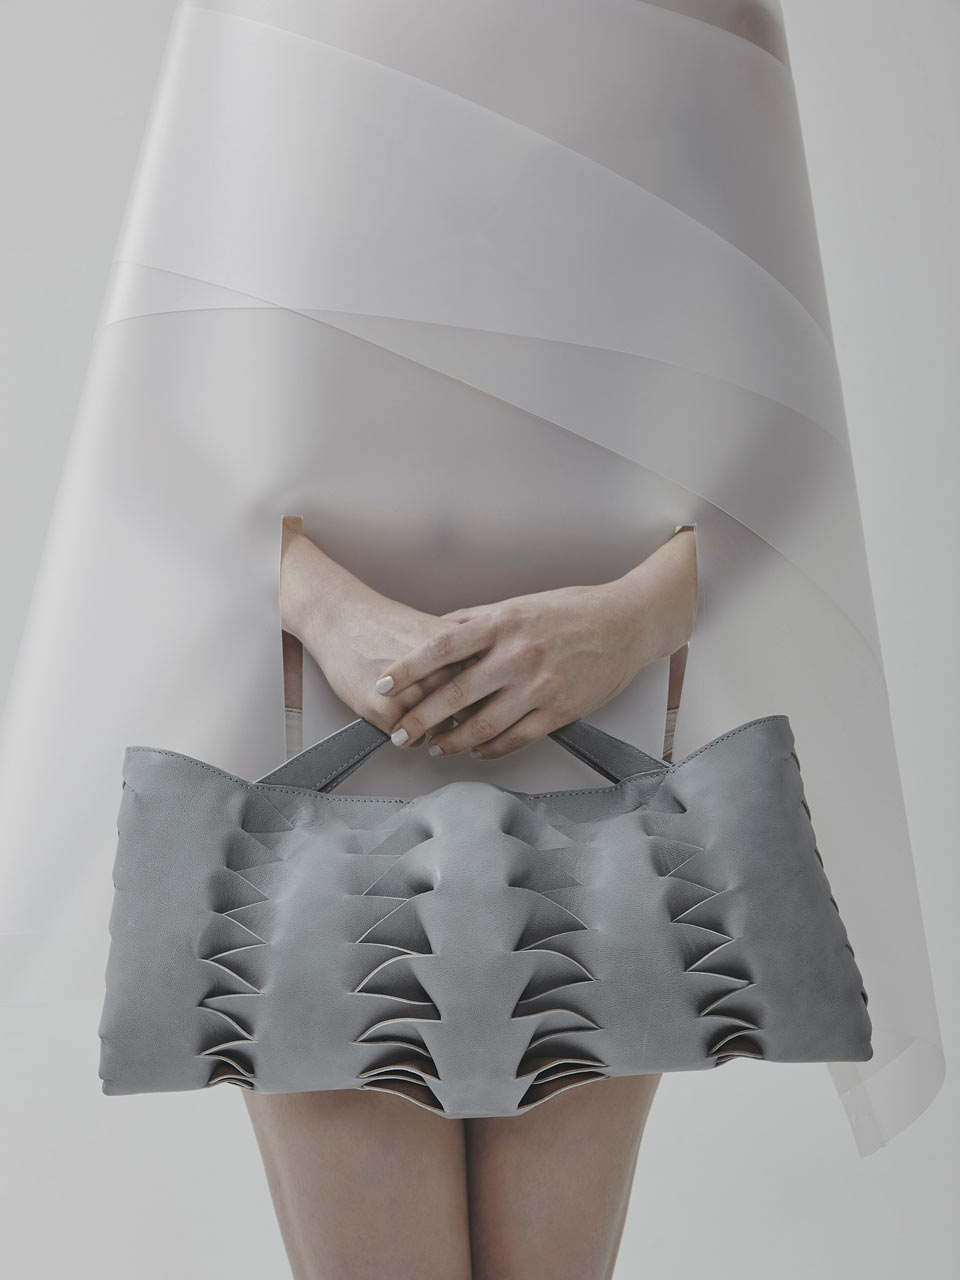 System-and-Form-Bags-Agnes-Kovacs-4